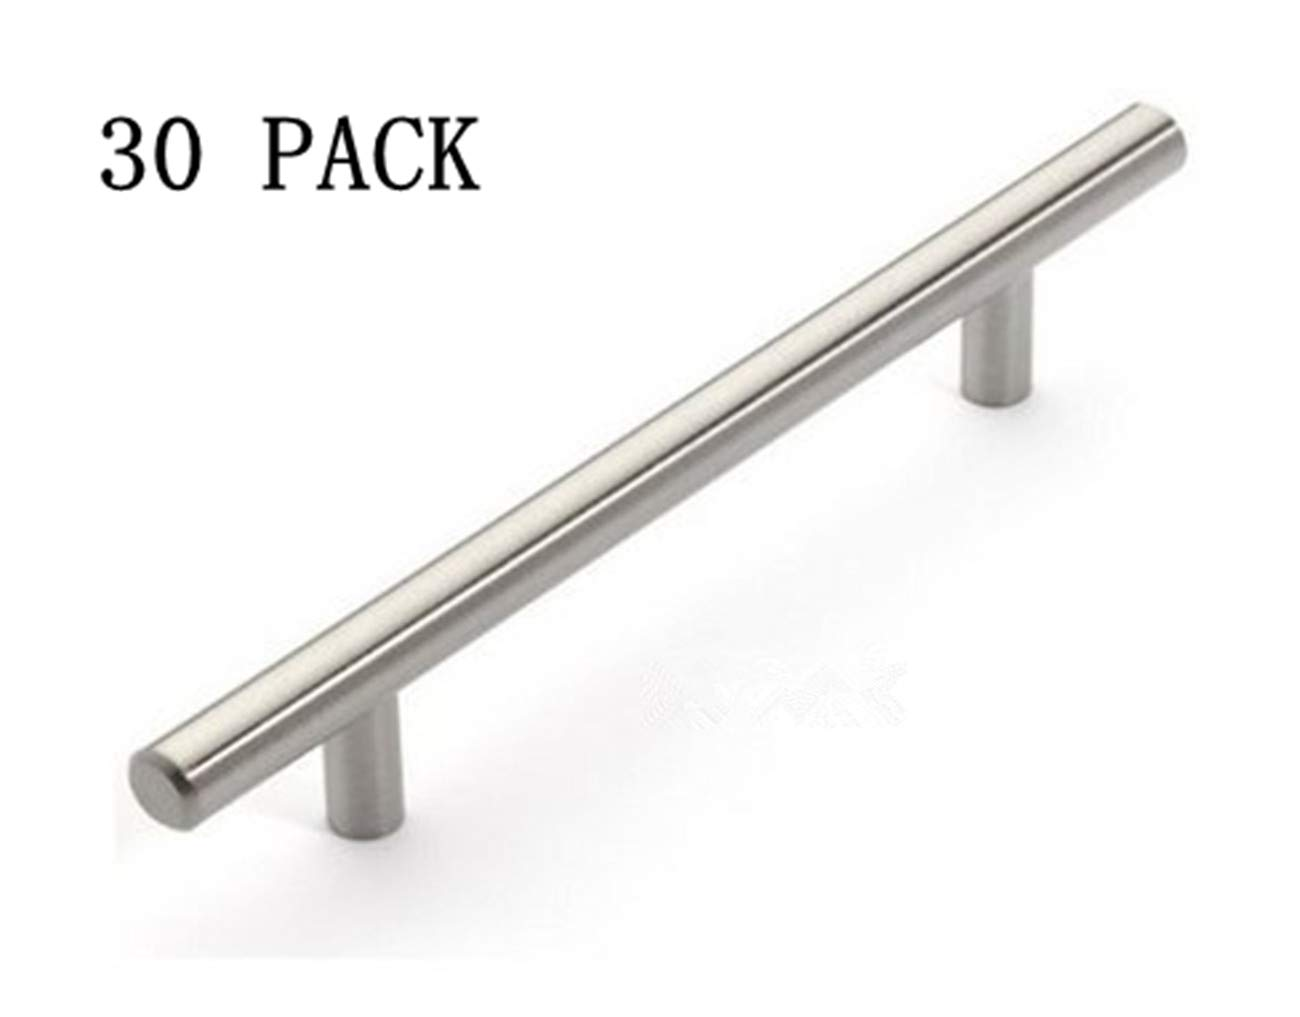 12mm Stainless Steel Kitchen Cabinet Handles T Bar Pull (6'' Overall Length,3.8'' Hole Centers)